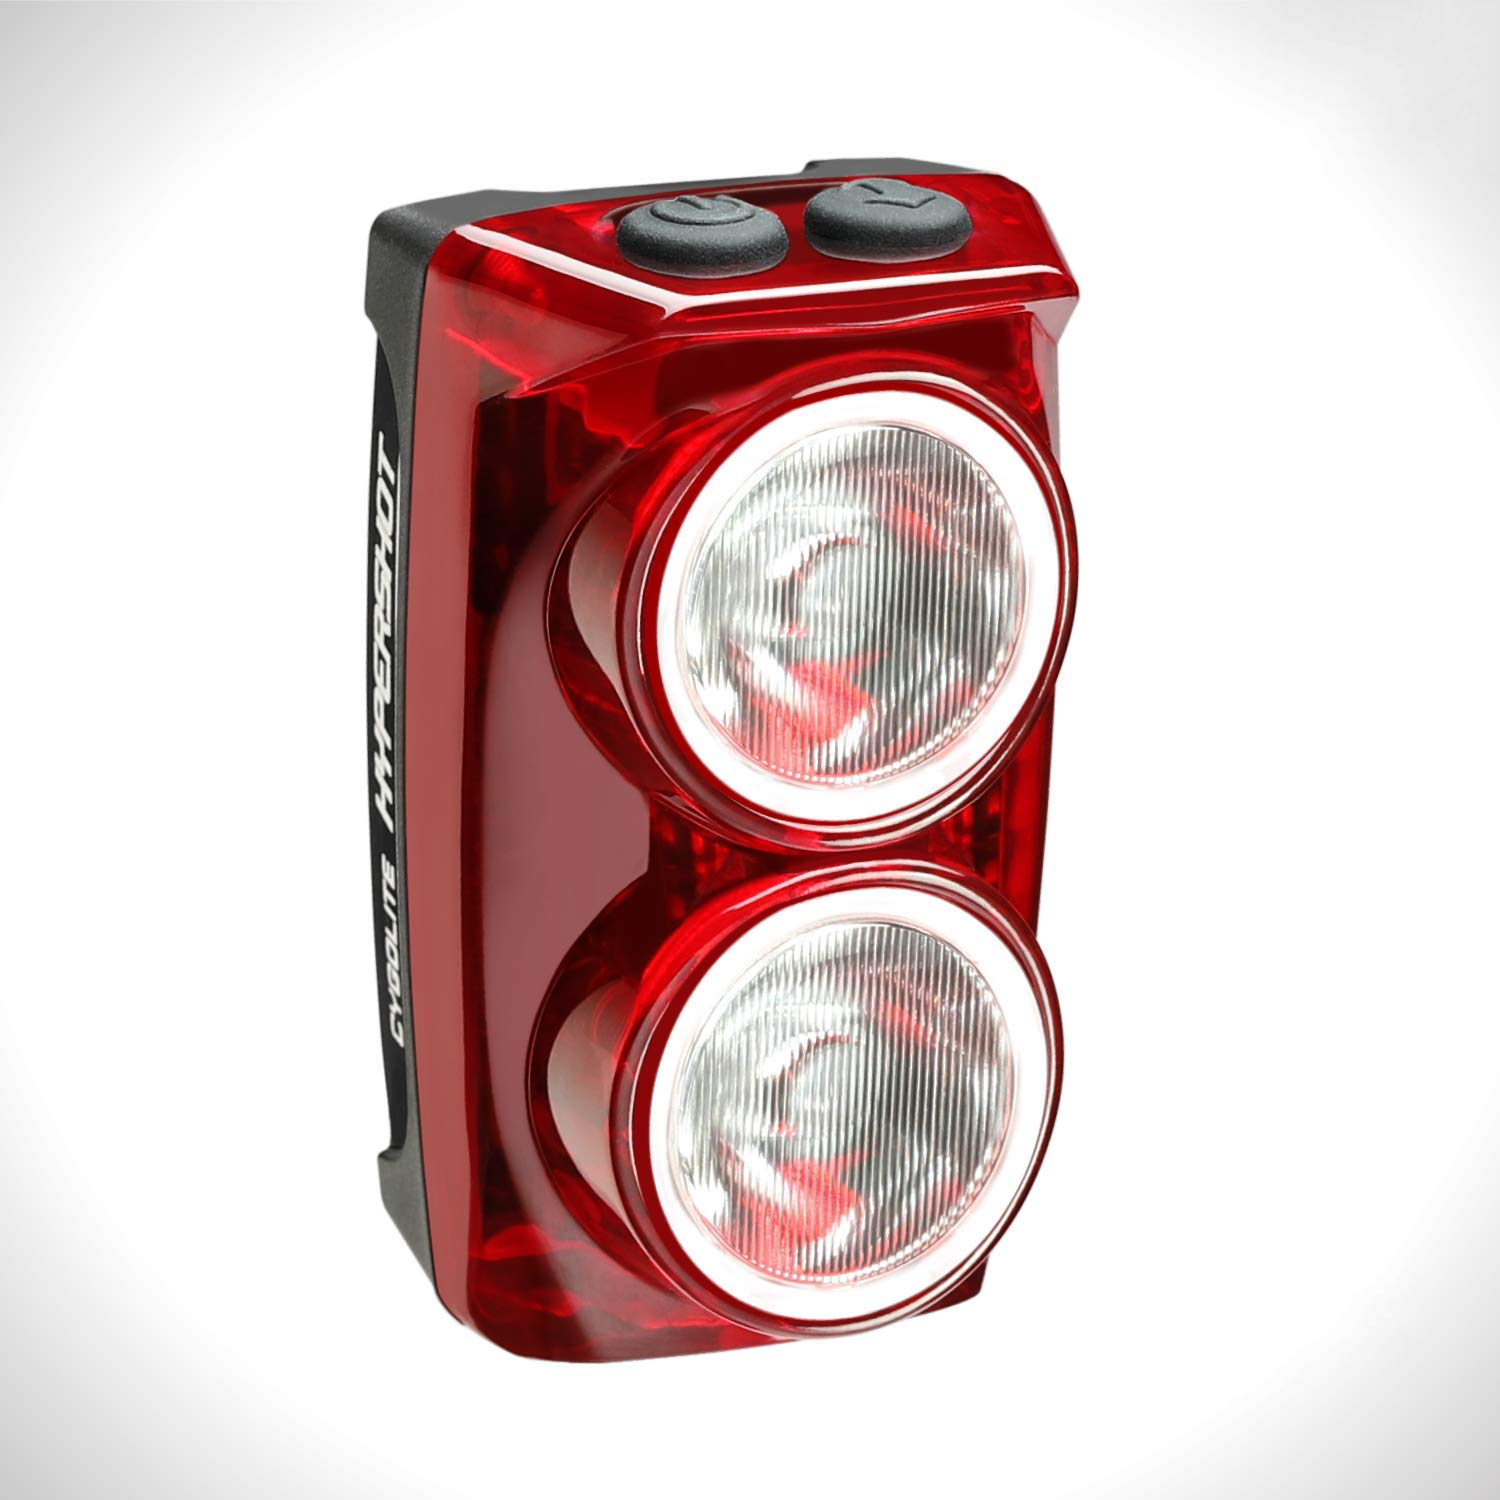 Cygolite Hypershot – 350 Lumen Bike Tail Light– 7 Night & Daytime Modes–User Adjustable Flash Speeds- Compact & Durable–IP64 Water Resistant–Secured Hard Mount–USB Rechargeable–Great for Busy Streets